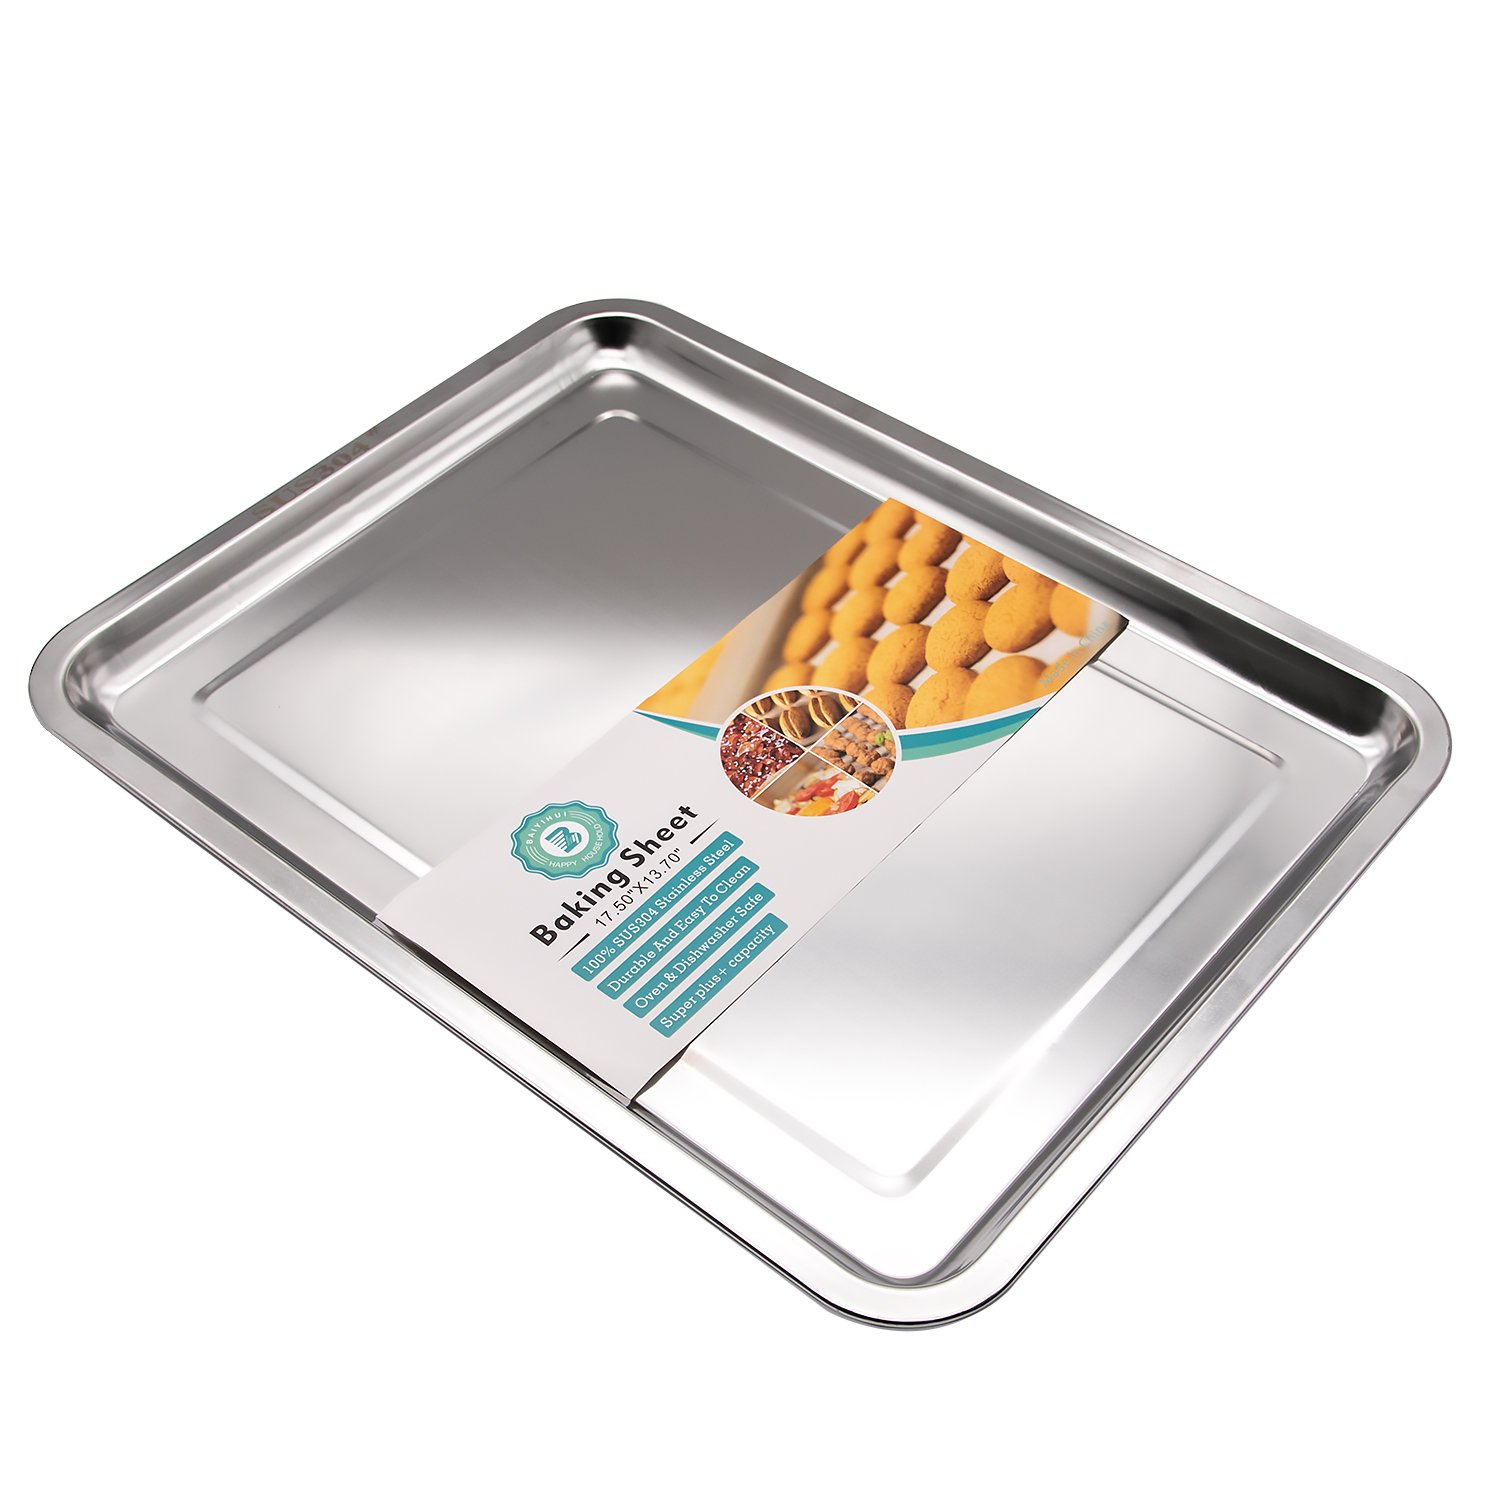 Baiyihui Baking Sheet, Professional SUS304 (18/8) Stainless Steel Cookie Sheet, Oven Safe, Rust Resistant, Non-Stick, Easy to Clean